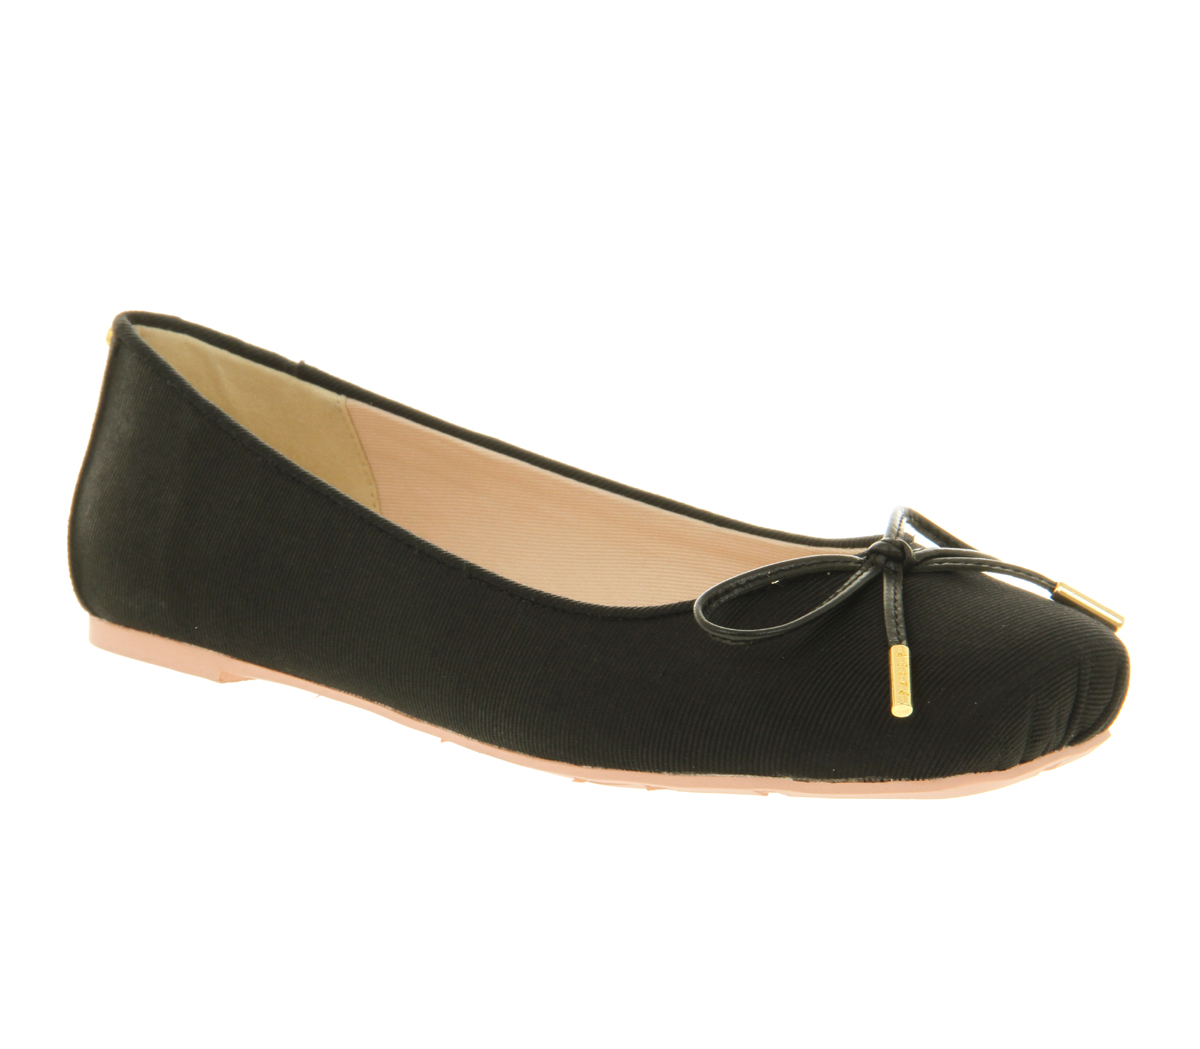 Simple Black Flat Sandals For Women Pour La Victoire39s Black